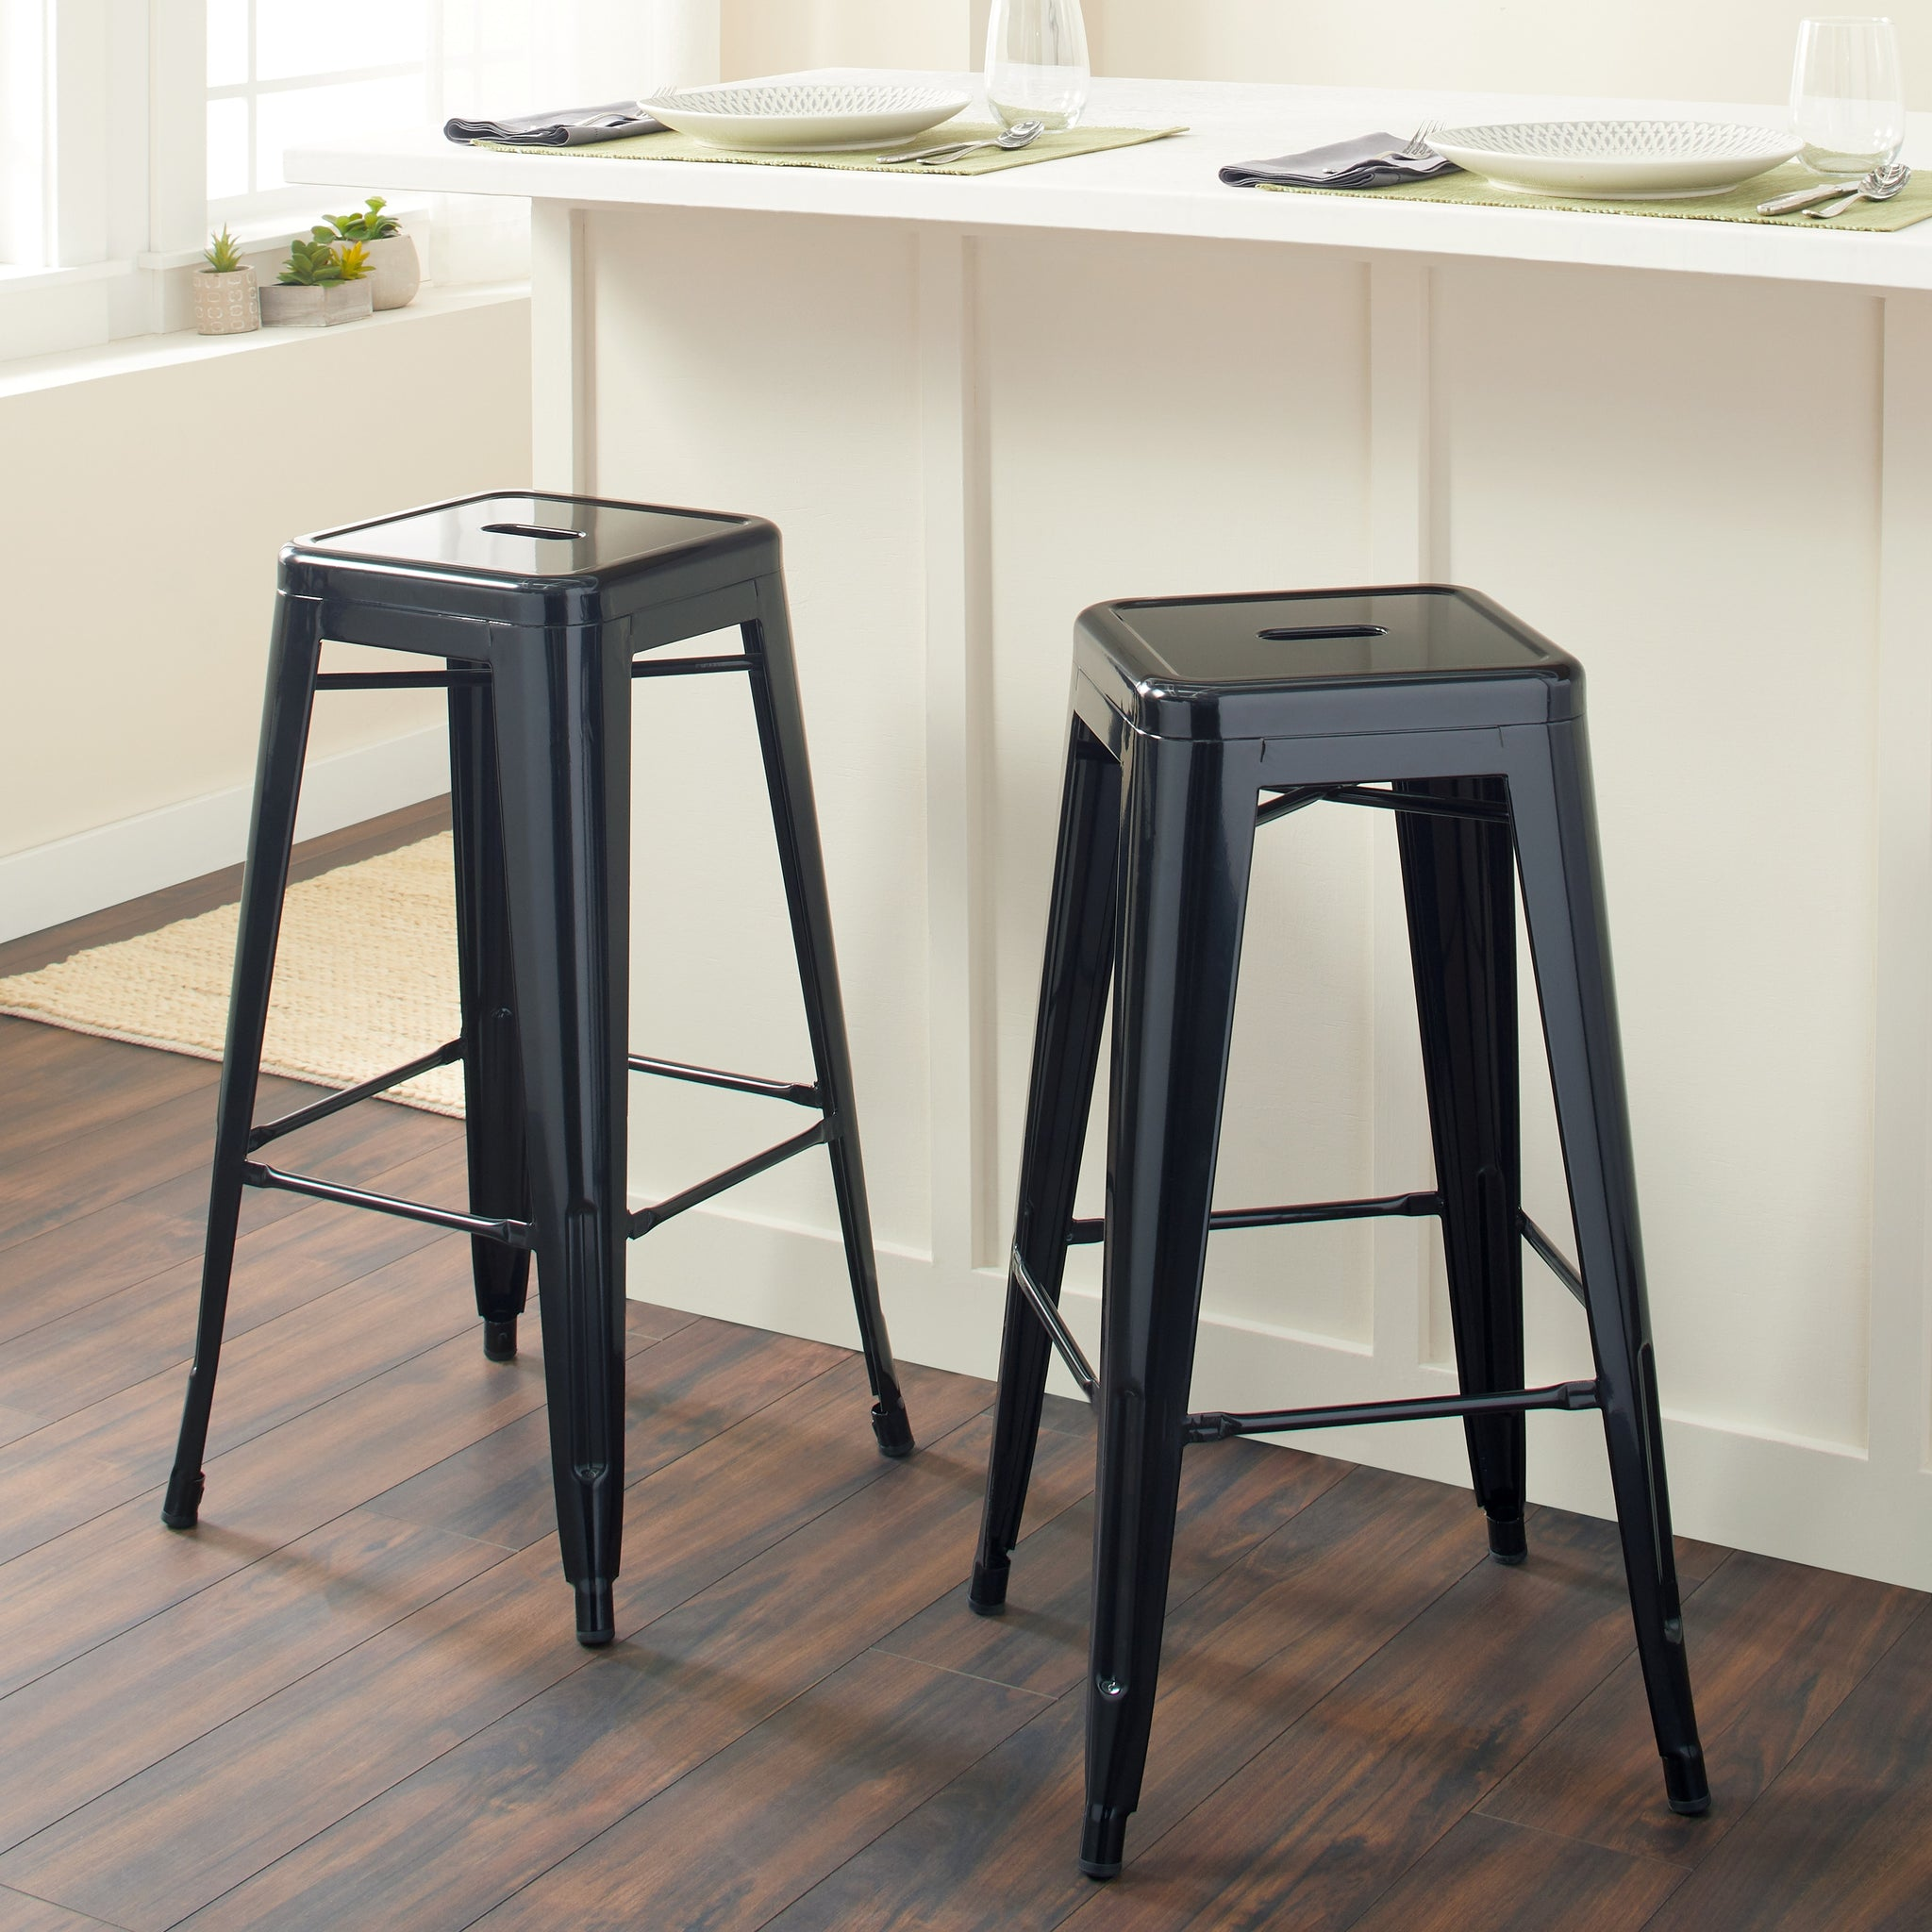 30-inch Black Metal Bar Stools (Set of 2)